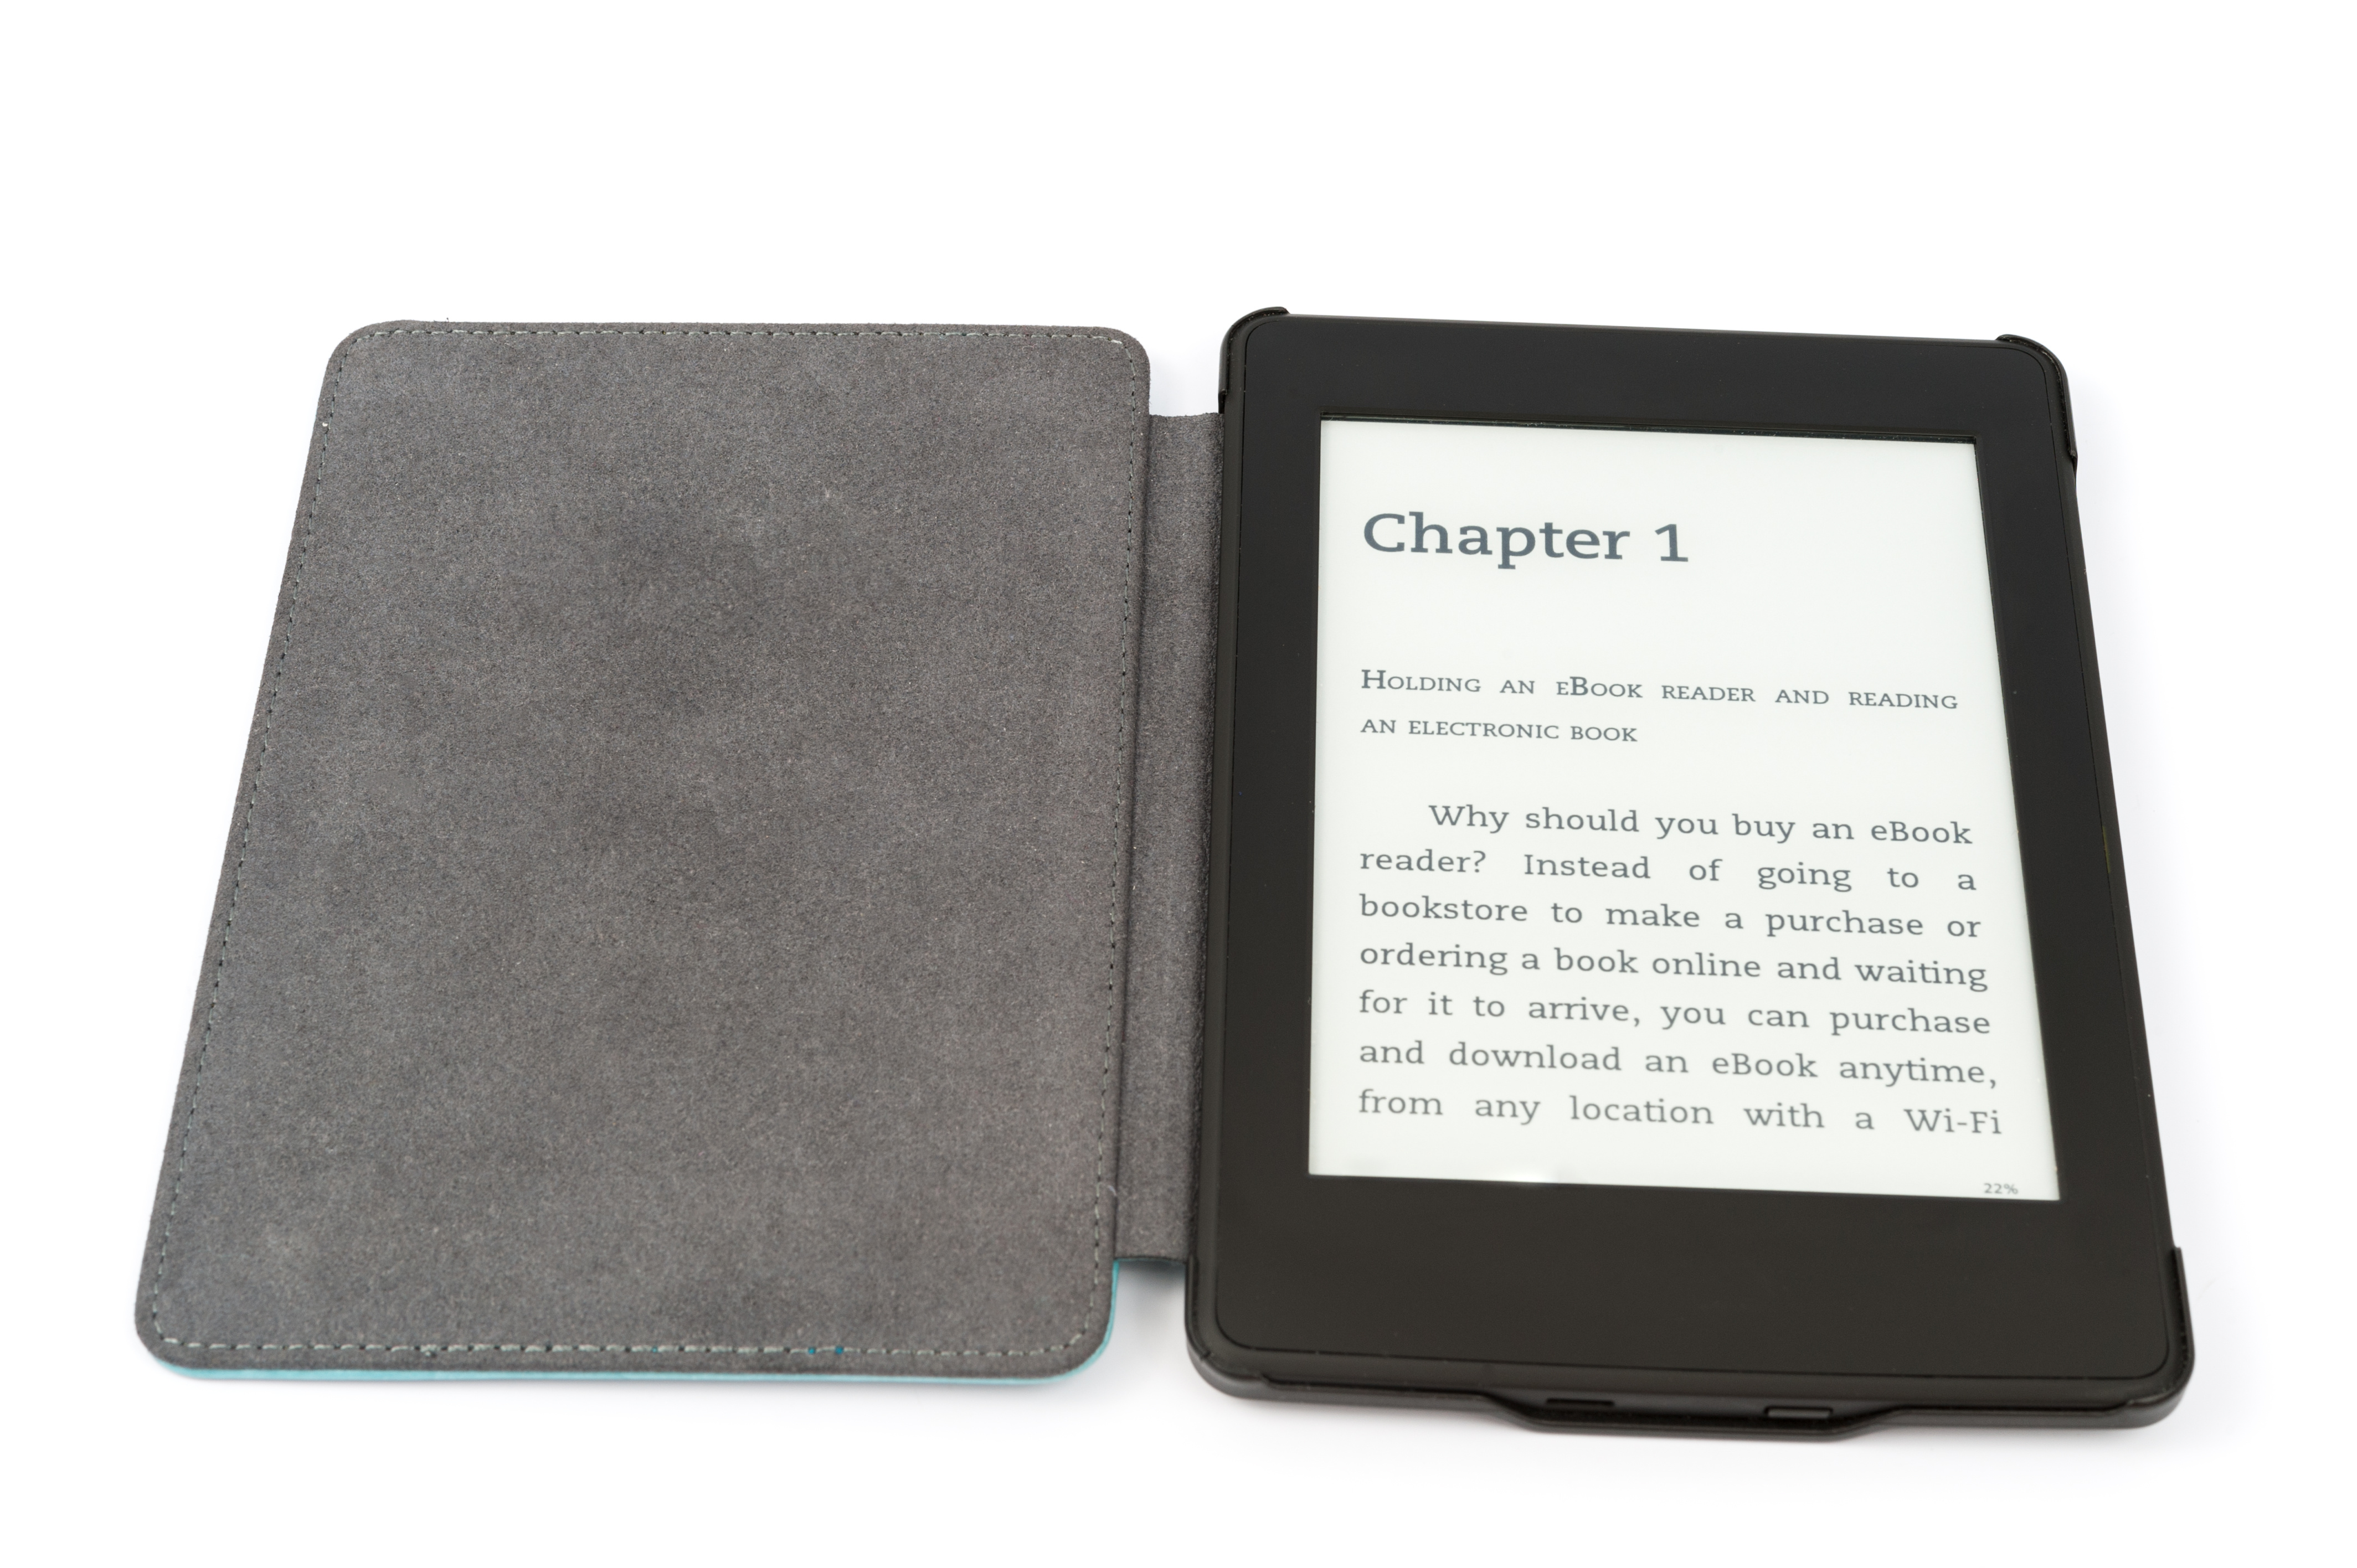 You can carry around hundreds upon hundreds of books inside that little device. Image courtesy of Adobe Stock.